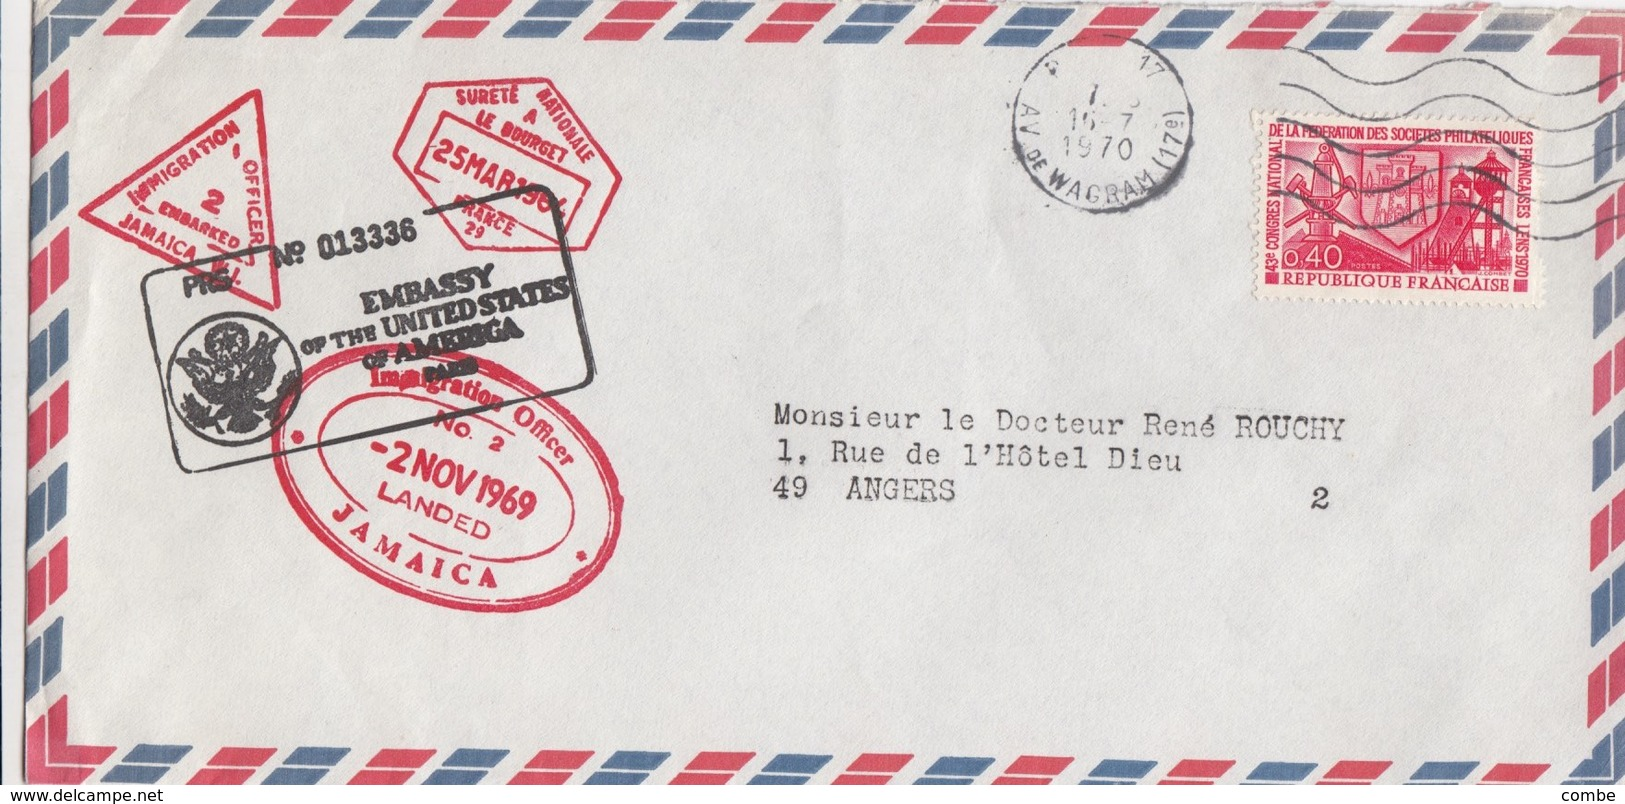 COVER. EMBASSY OF USA PARIS FRANCE. SURETE NATIONALE LE BOURGET. IMMIGRATION OFFICE JAMAICA - Ohne Zuordnung